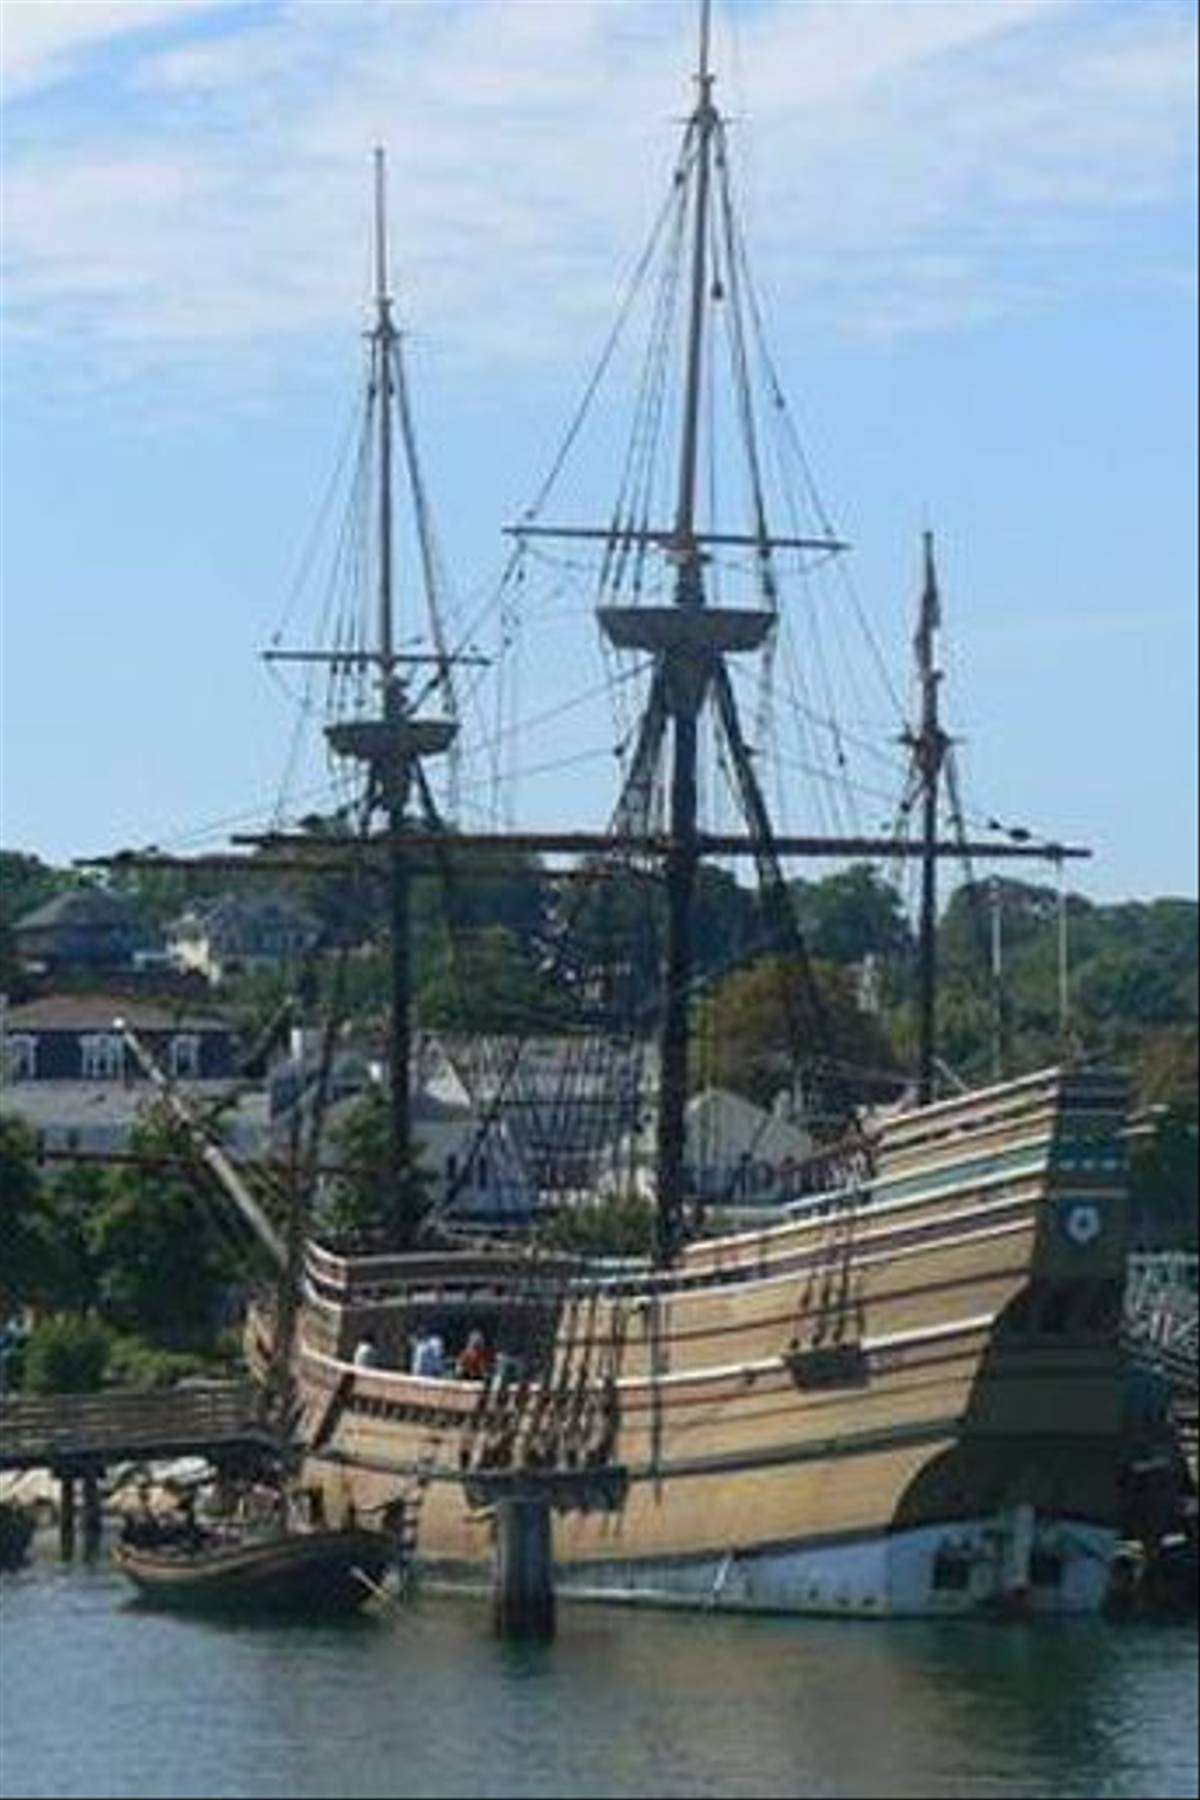 Replica of The Mayflower (Ian Nicholson)